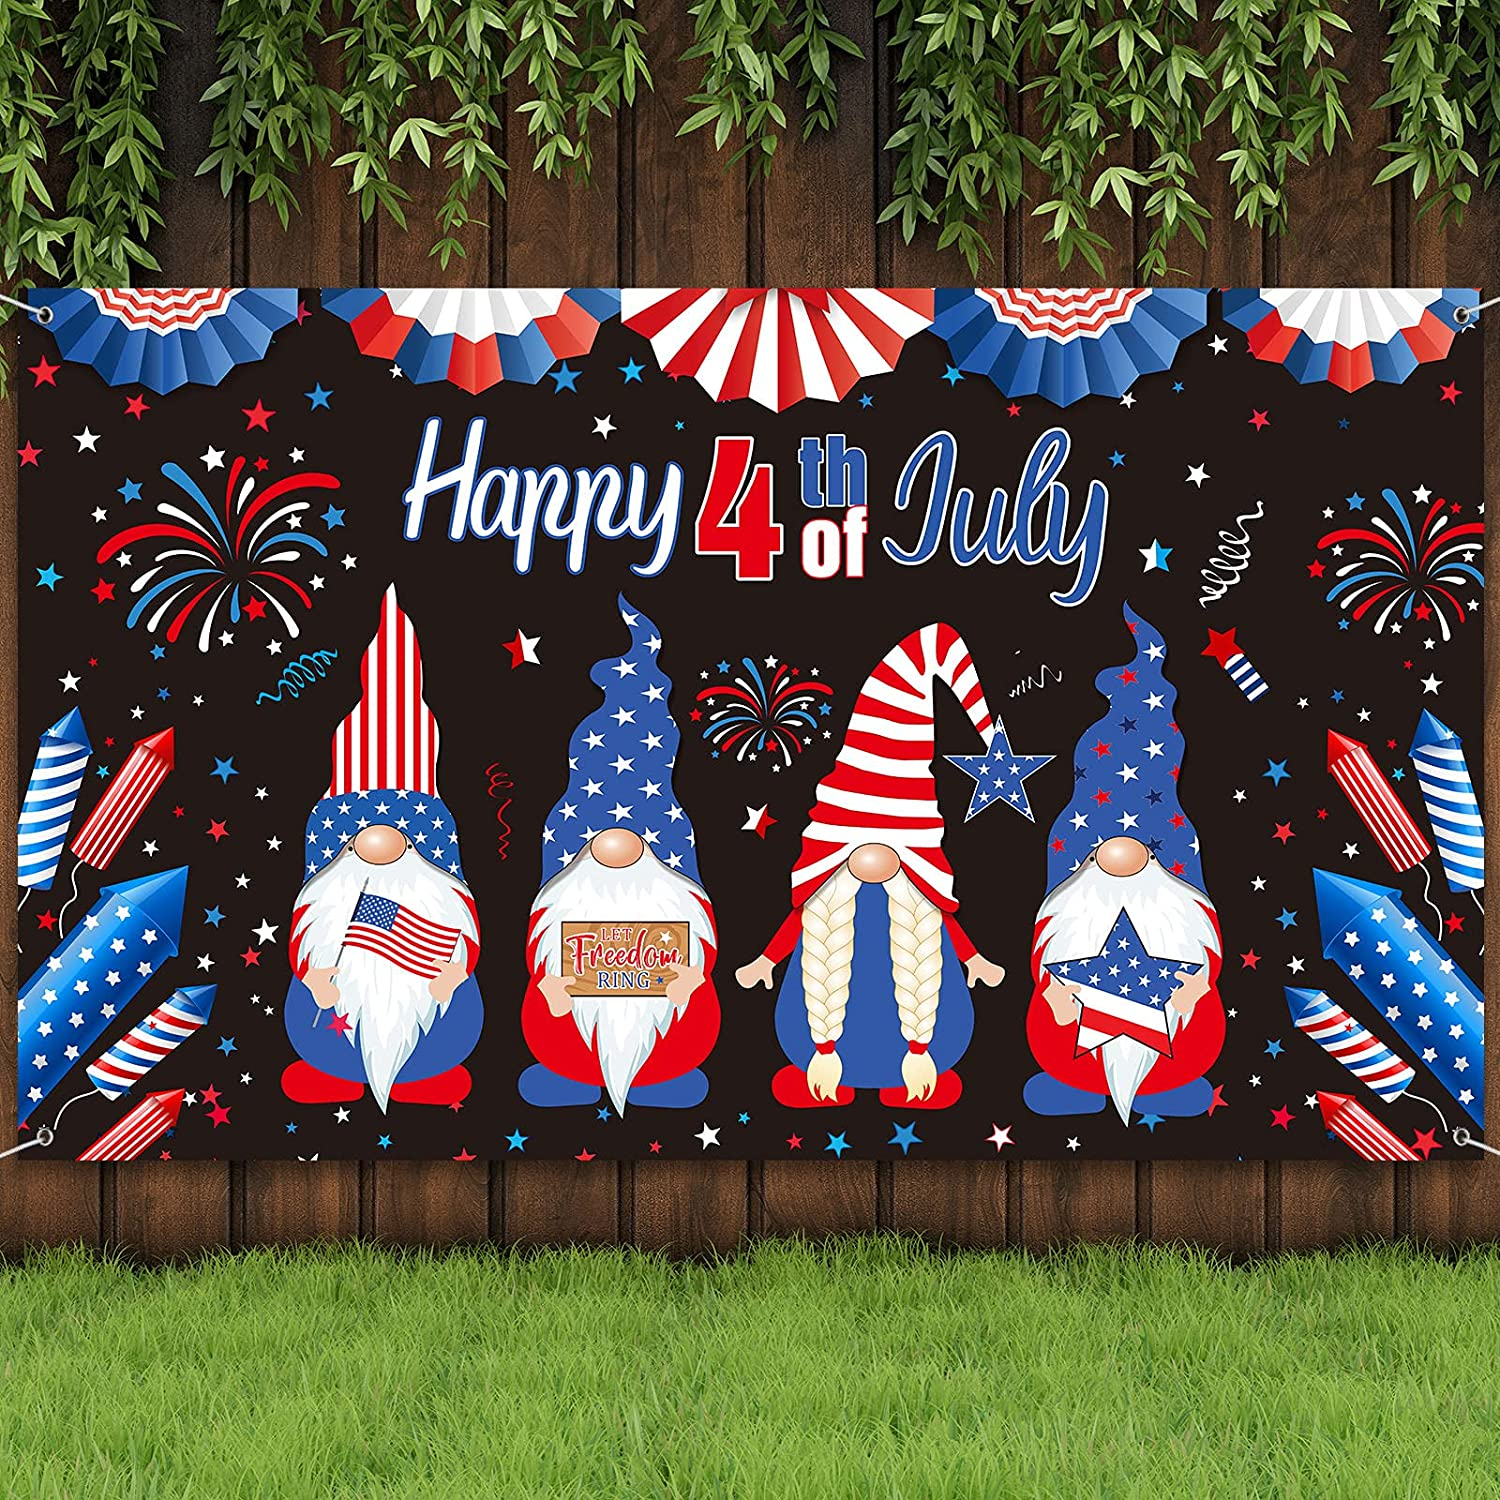 PatrioticBackdrop 4thofJulyBackground Independence Day Photography Backdrop Patriotic Decorations with Fireworks, Red Blue Stars and Gnomes for Veterans Memorial National Day Party, 6 x 4 ft